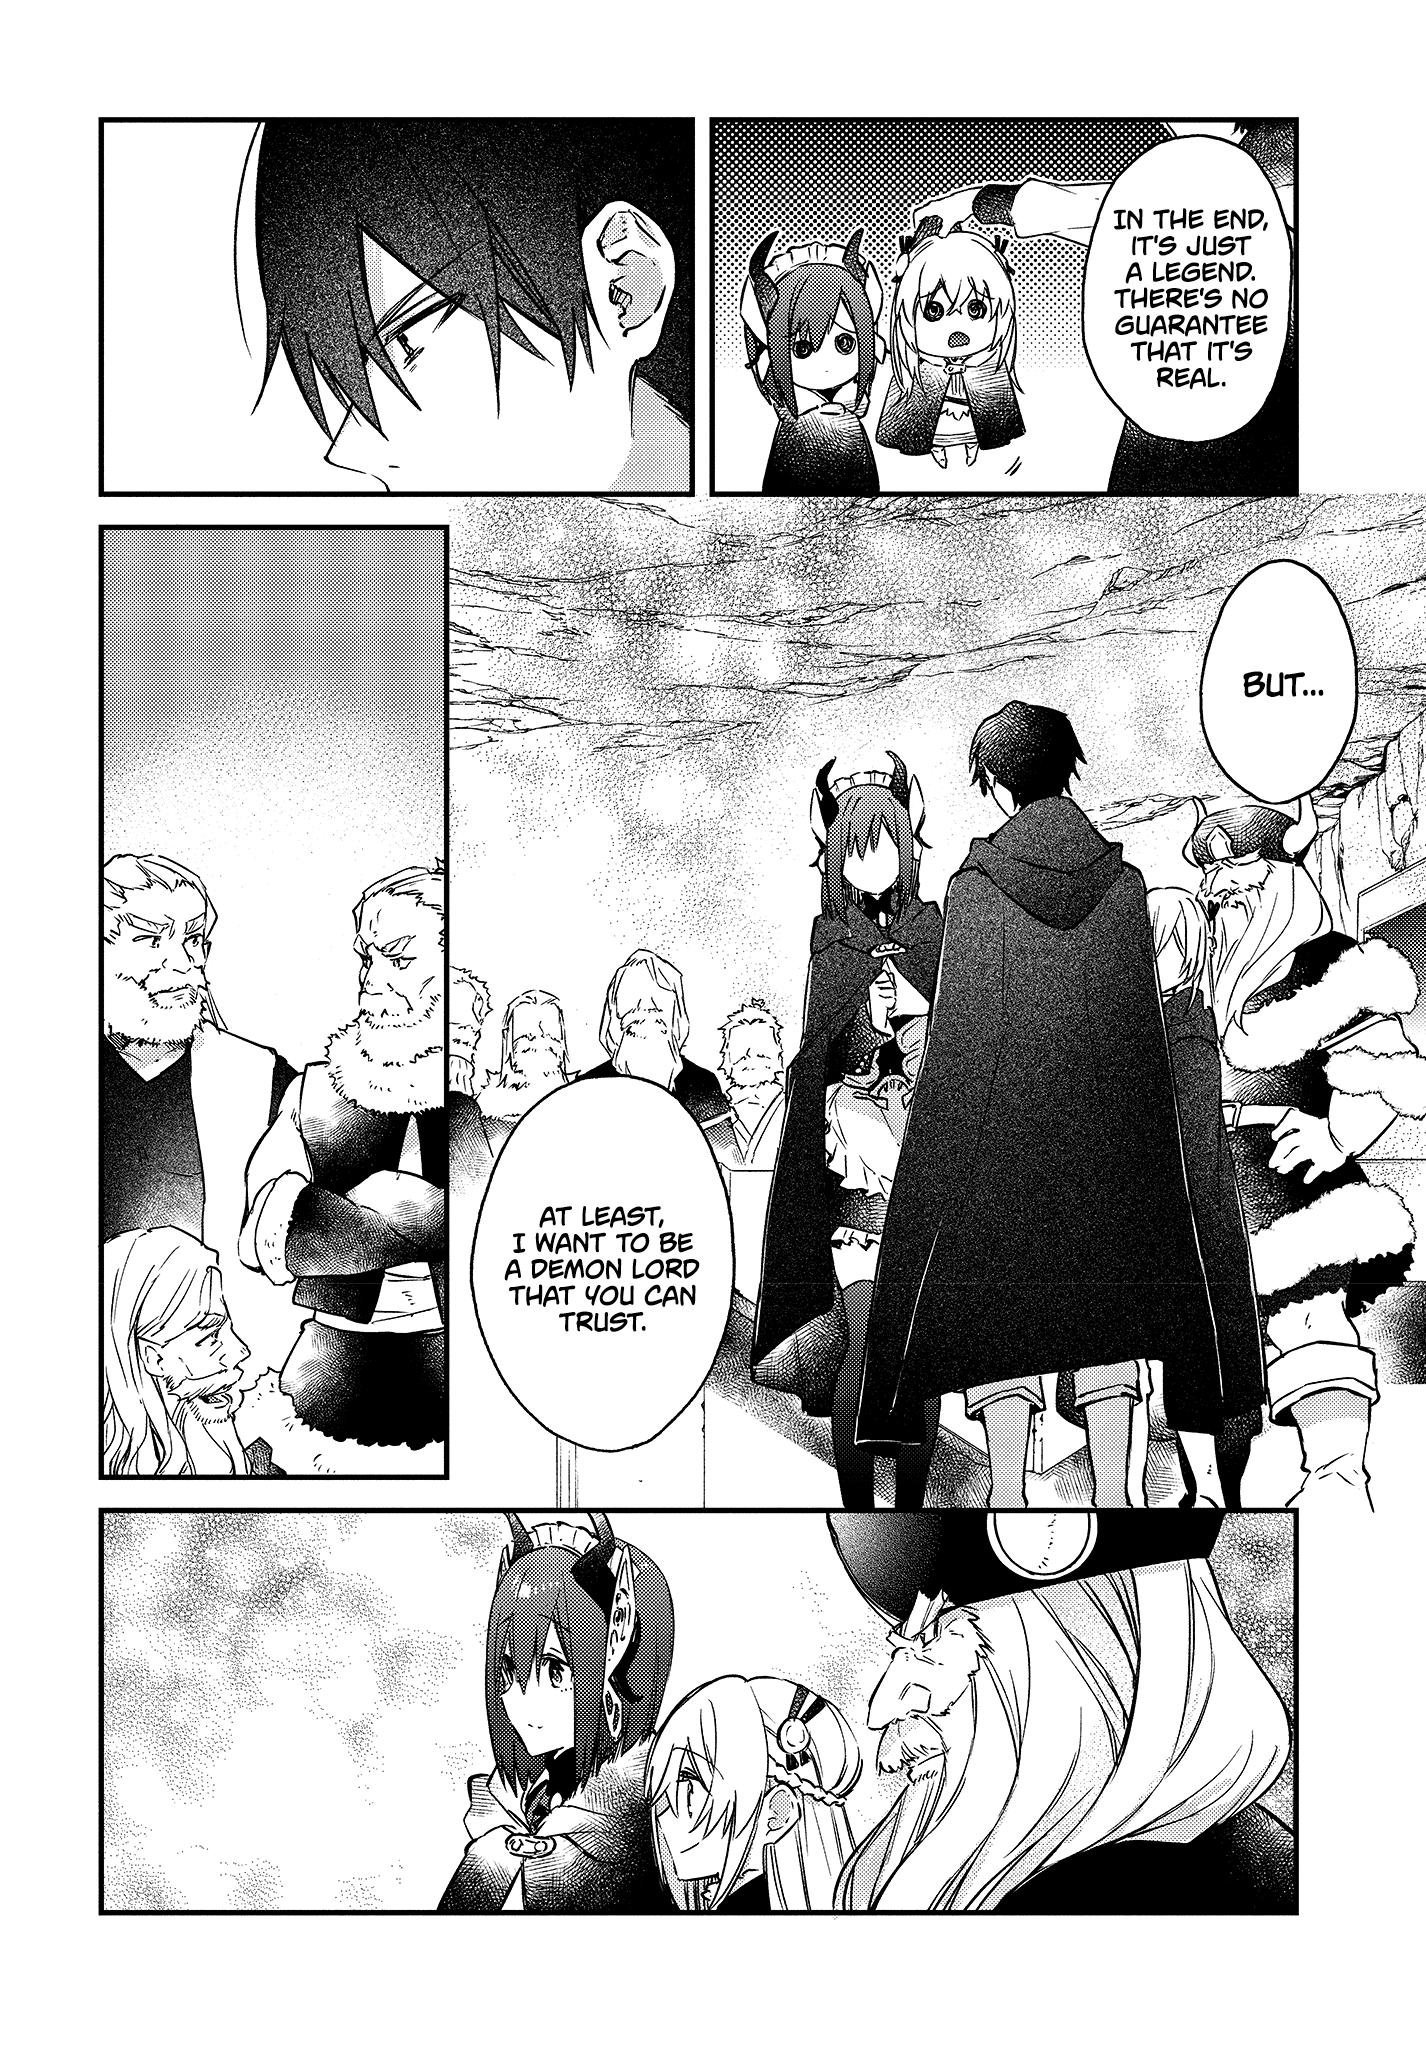 Manga The Legendary Rebuilding of a World by a Realist Demon King - Chapter 13 Page 7